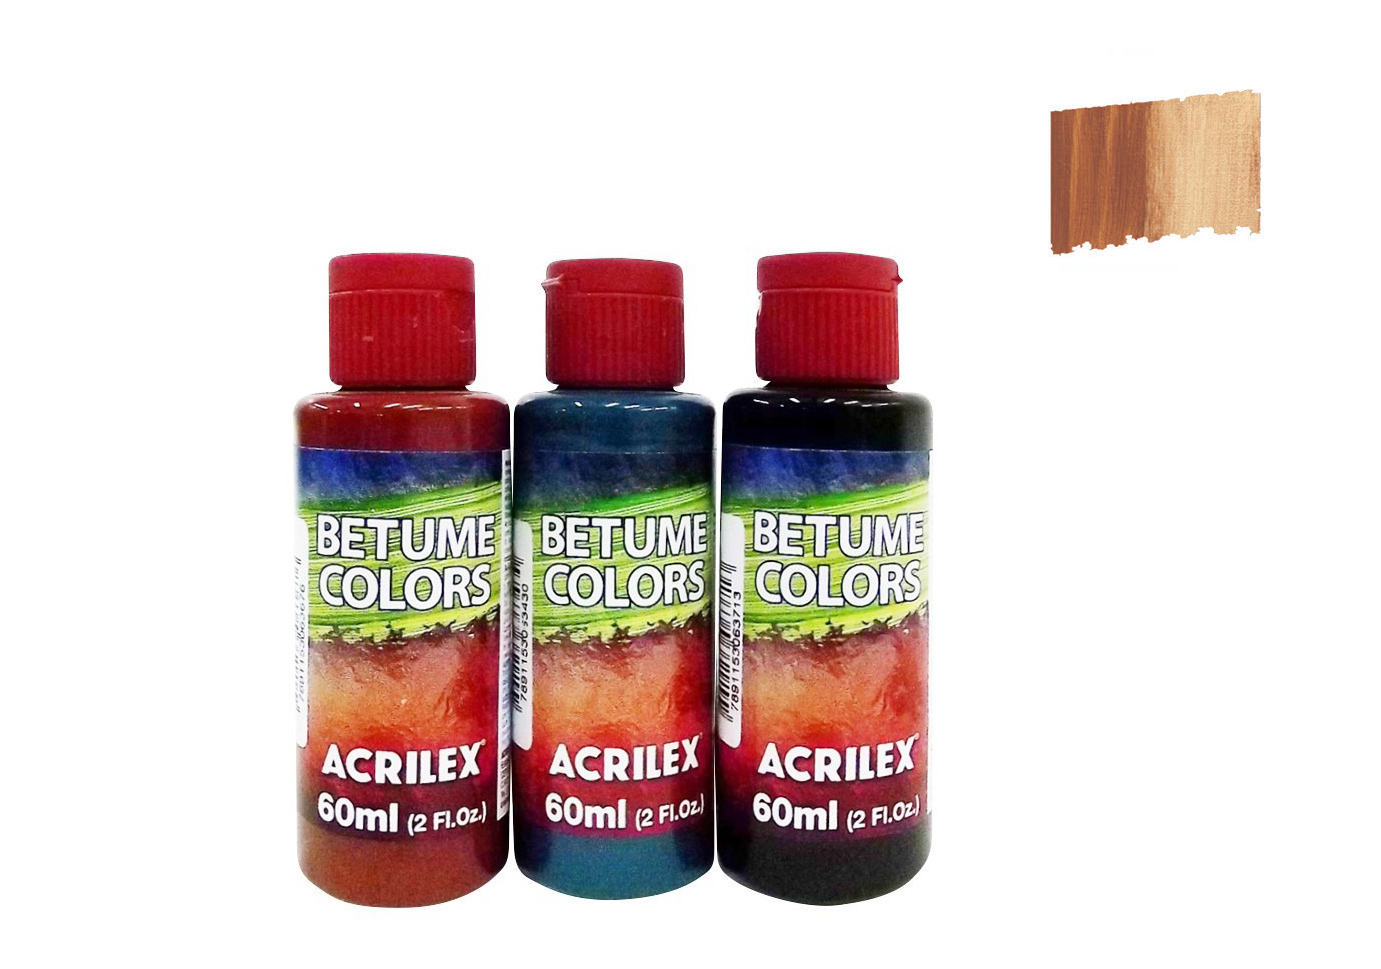 BETUME COLORS 60ML CASTANHO CLARO 21660815 ACRILEX